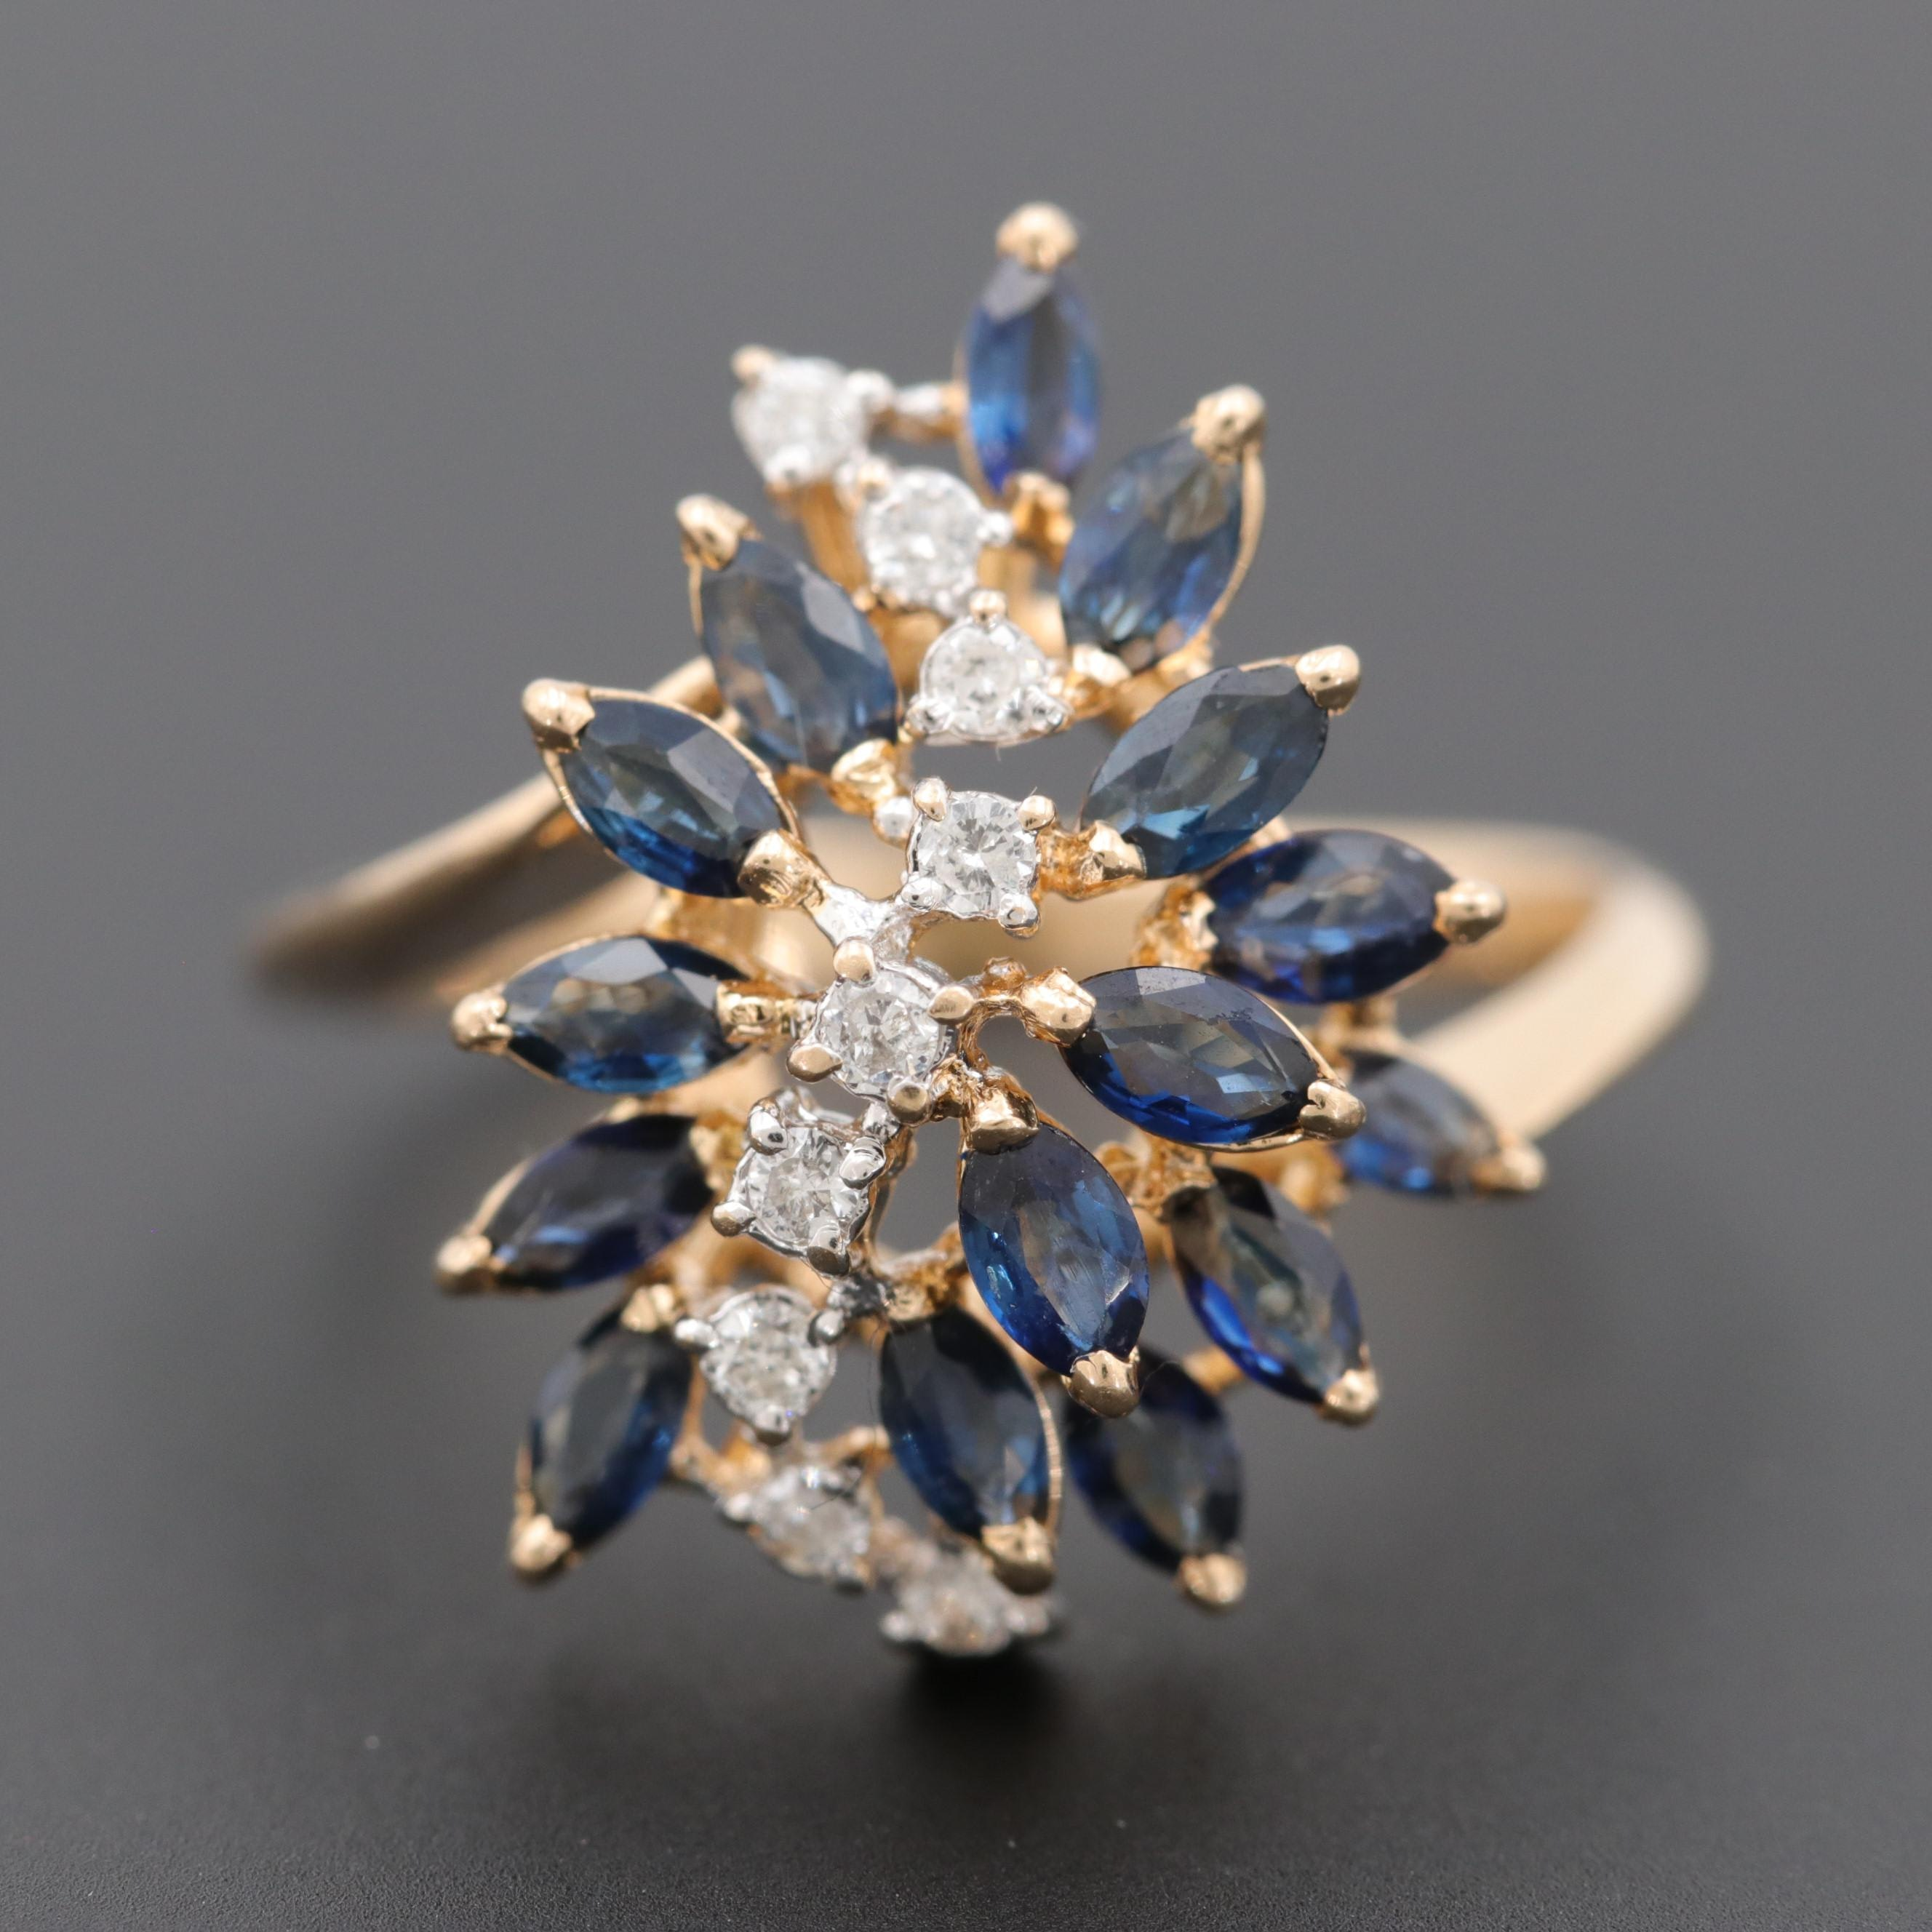 14K Yellow Gold Diamond and Blue Sapphire Cluster Ring